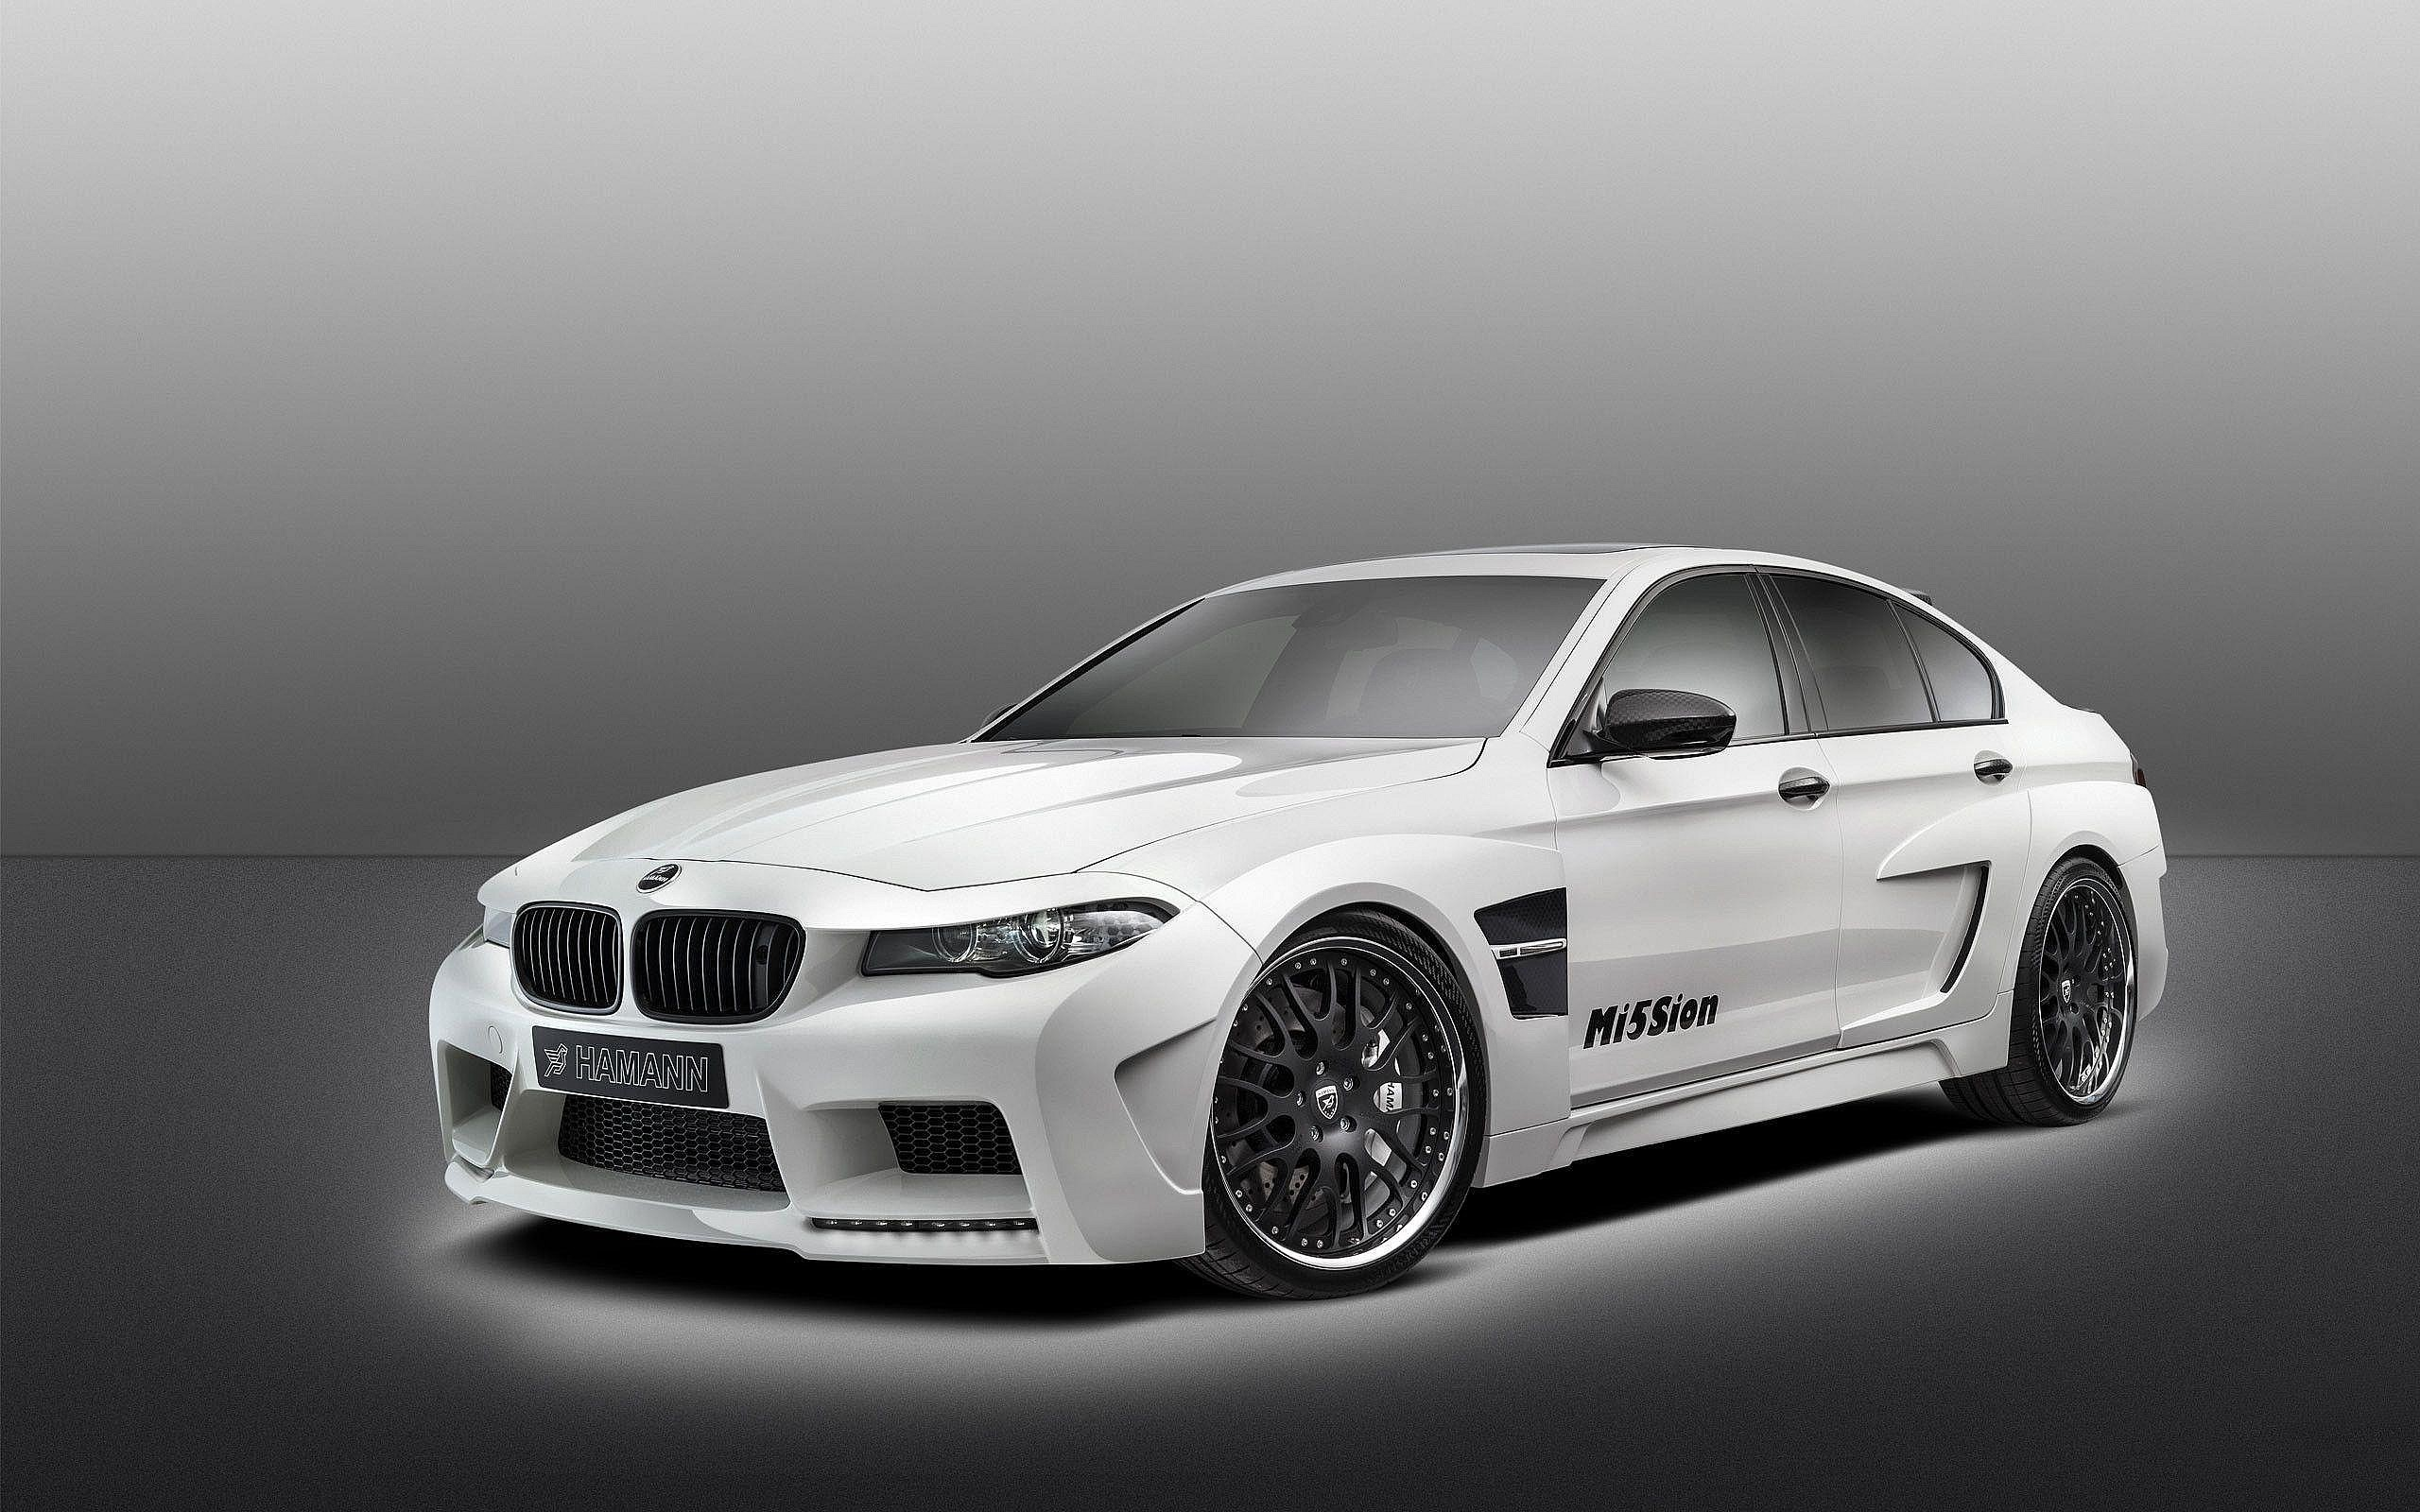 2560x1600 Bmw m5 wallpapers tapete höhle retina - small